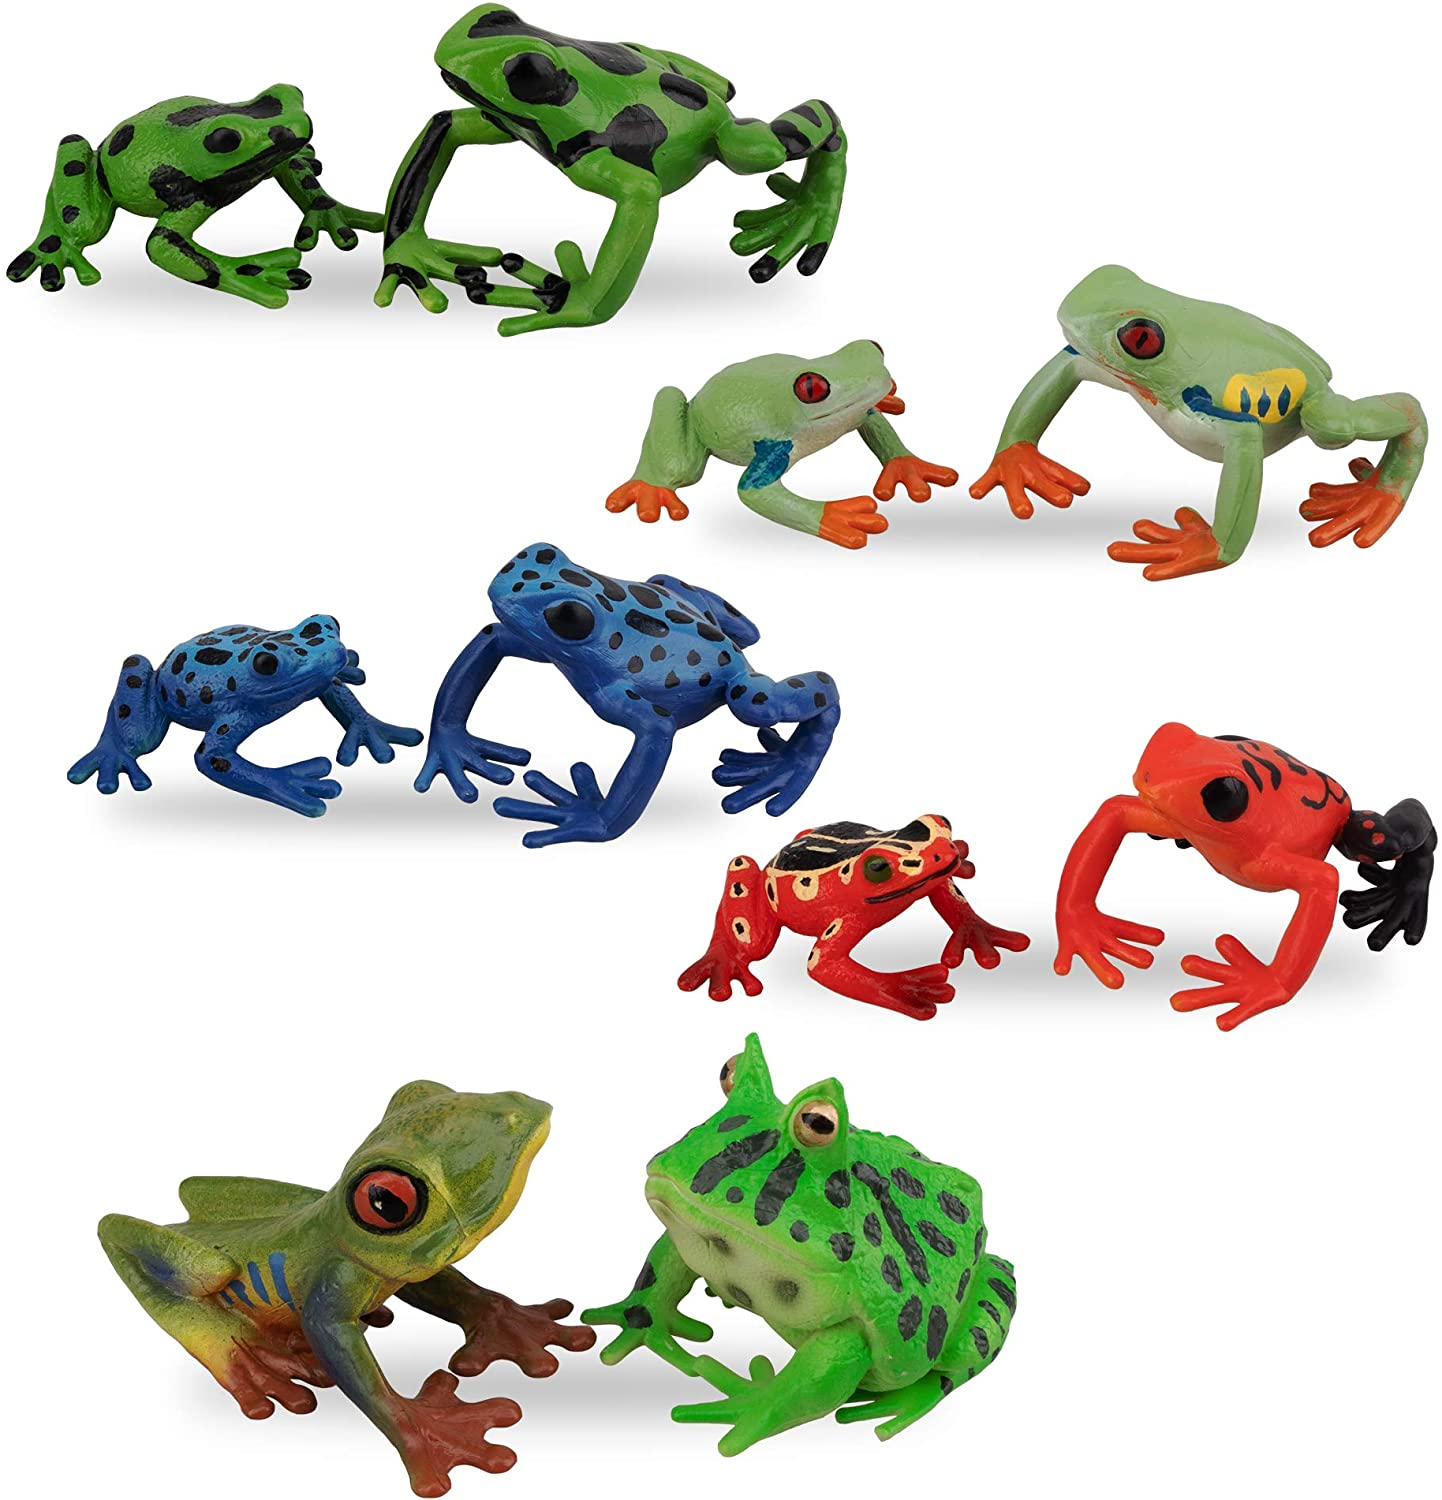 Toymany Super popular specialty store Frog Figures 2021 autumn and winter new Forest Animal Plastic Figurines 10PCS Rubb